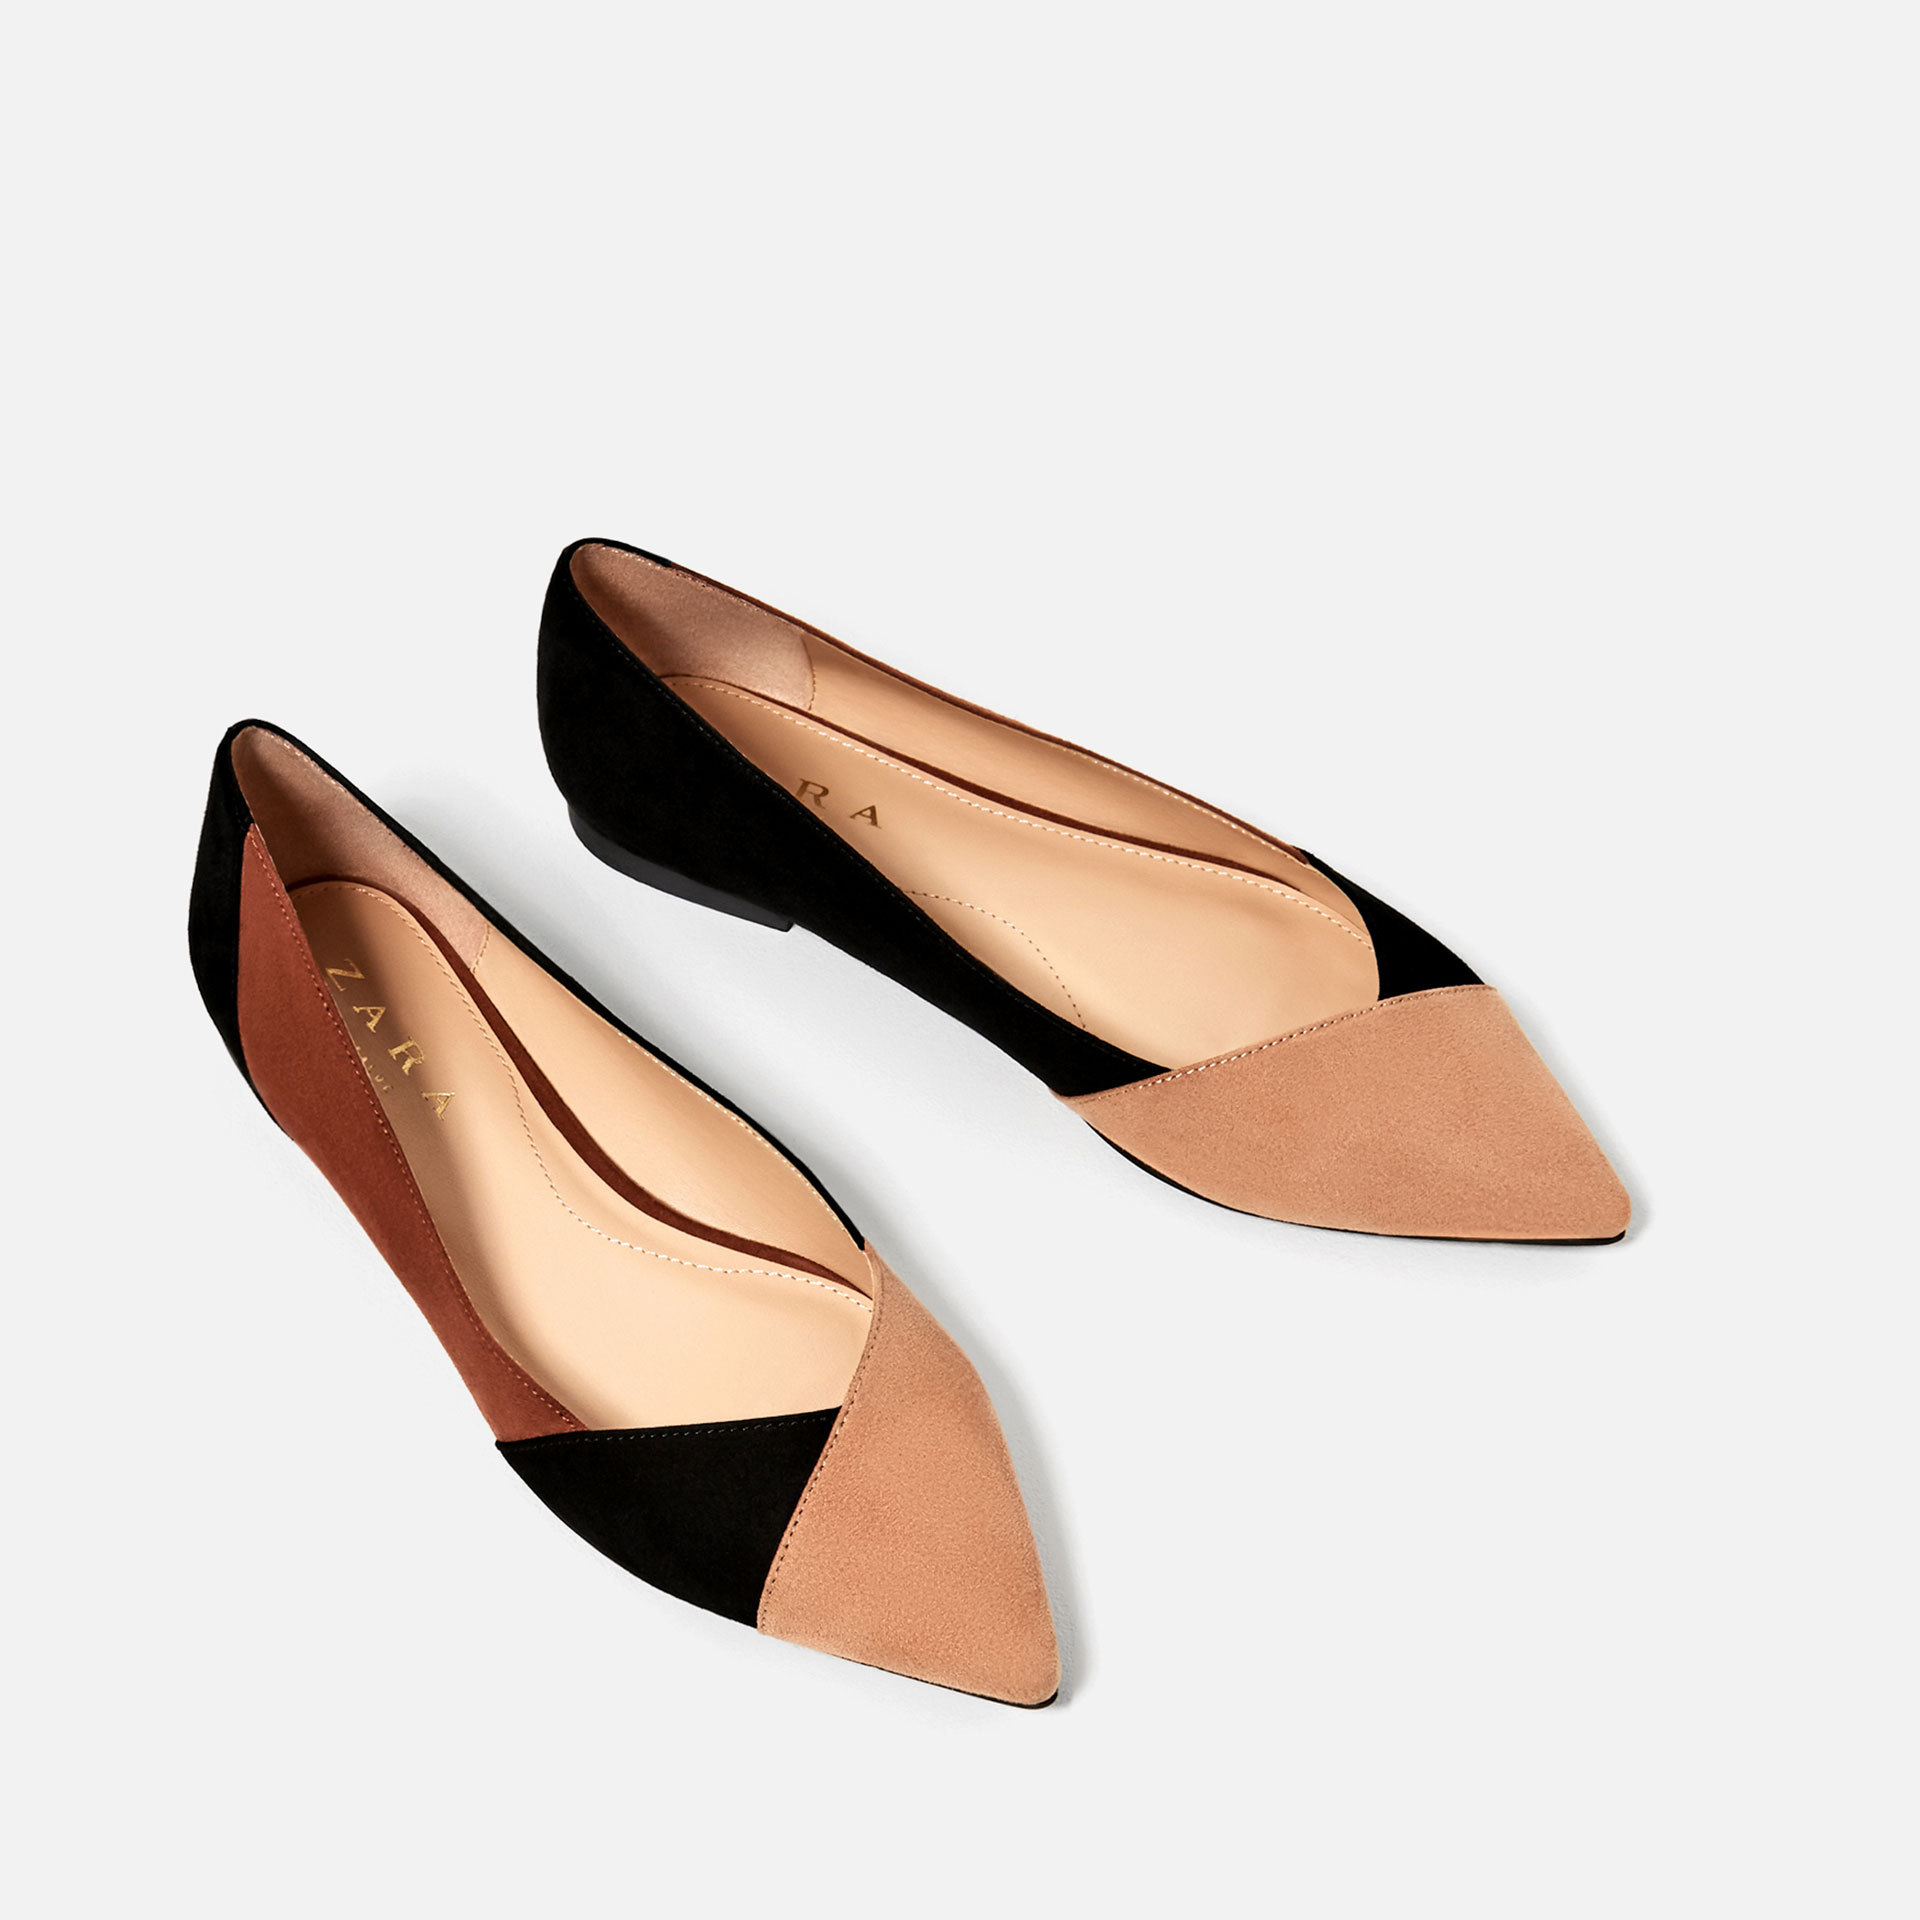 8 Zara Shoes You Can Buy Right Now That Look Designer Thefashionspot The best spring 2017 shoe trends, according to zara. 8 zara shoes you can buy right now that